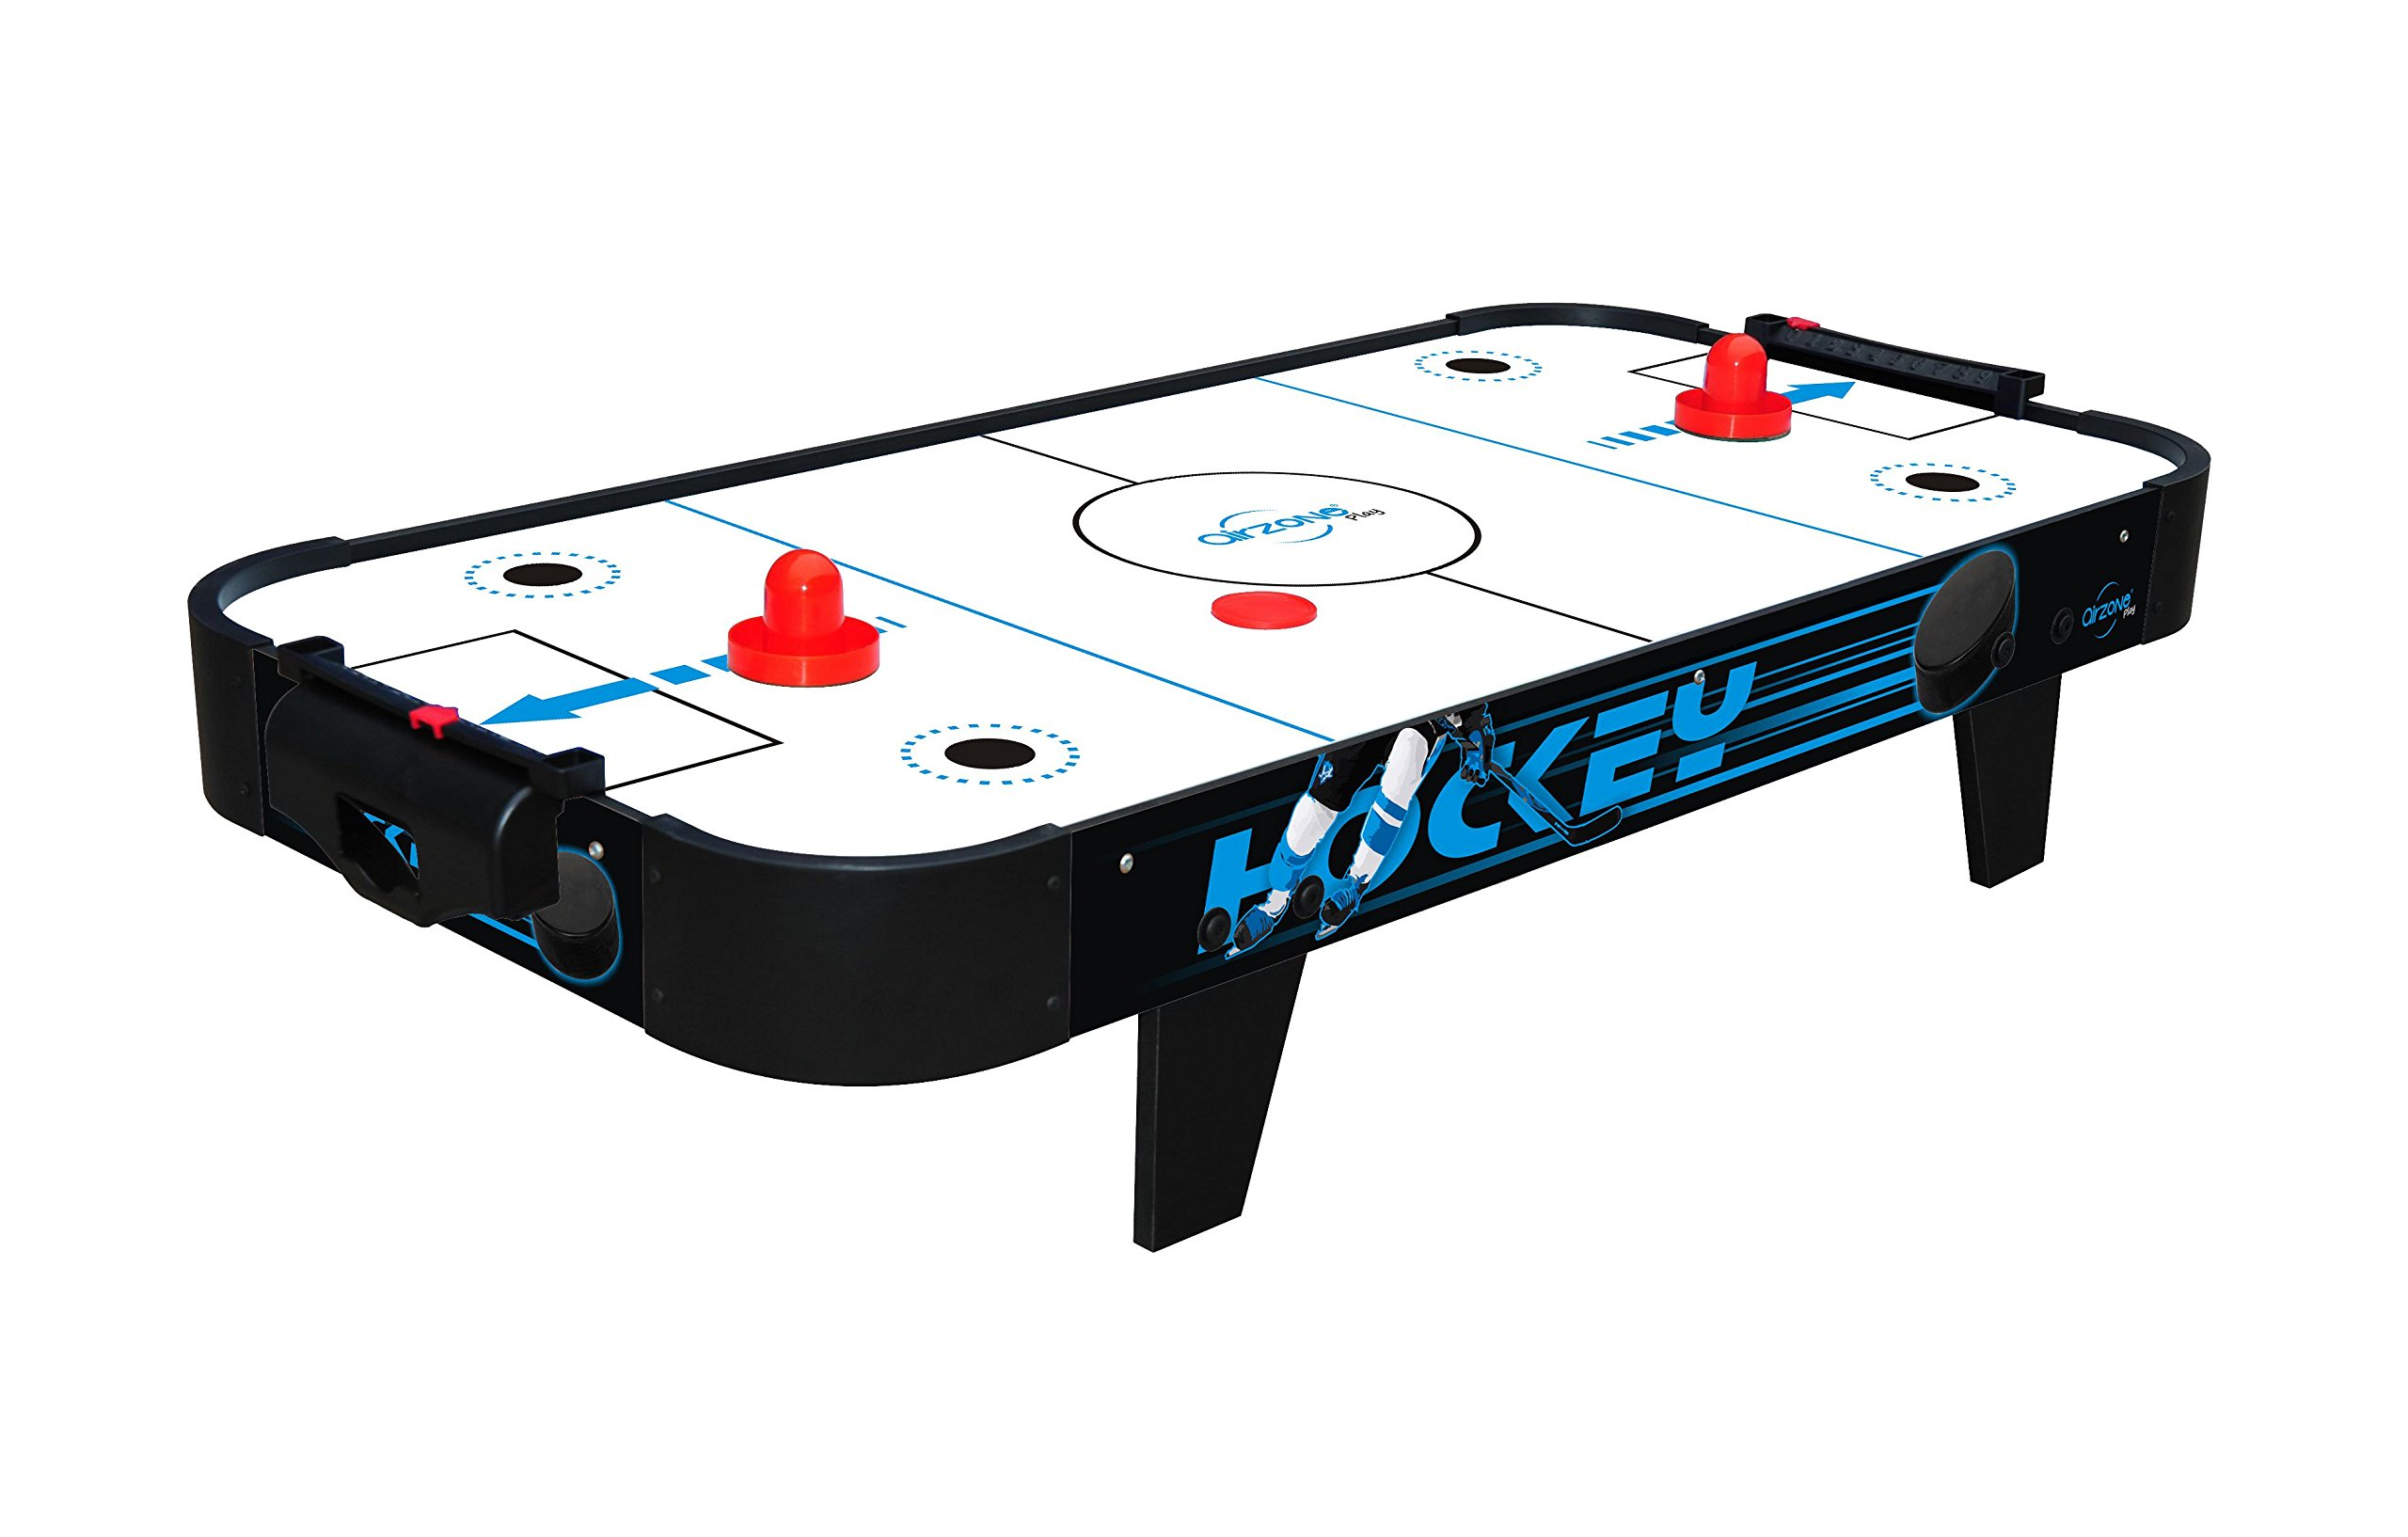 AirZone Play 40'' Table Top Air Hockey Table by AirZone Play